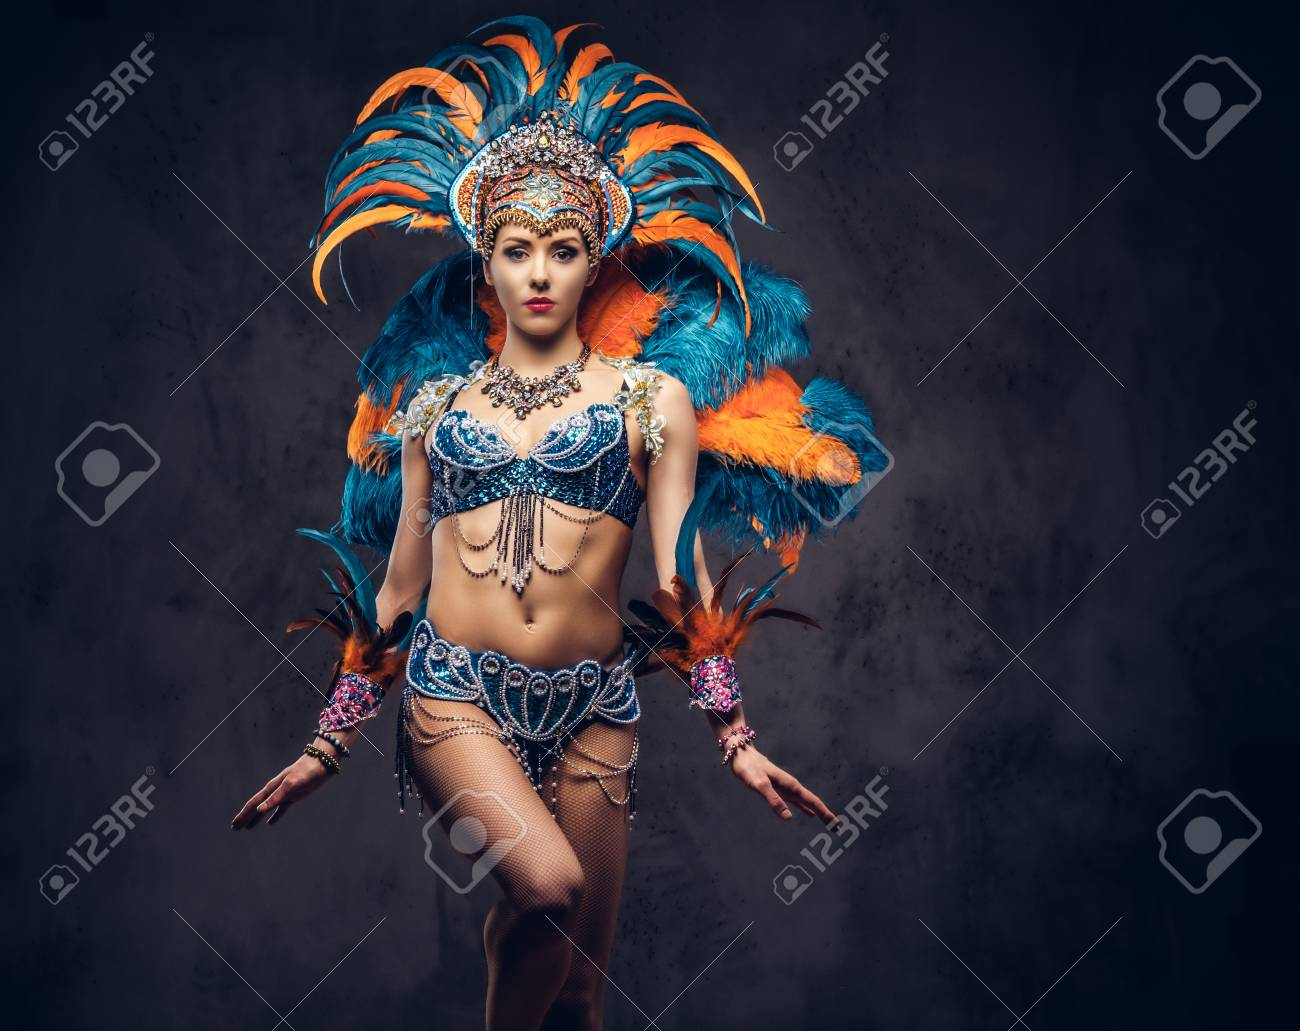 Studio portrait of a female in a colorful sumptuous carnival feather suit. Isolated on a dark background. - 100610057